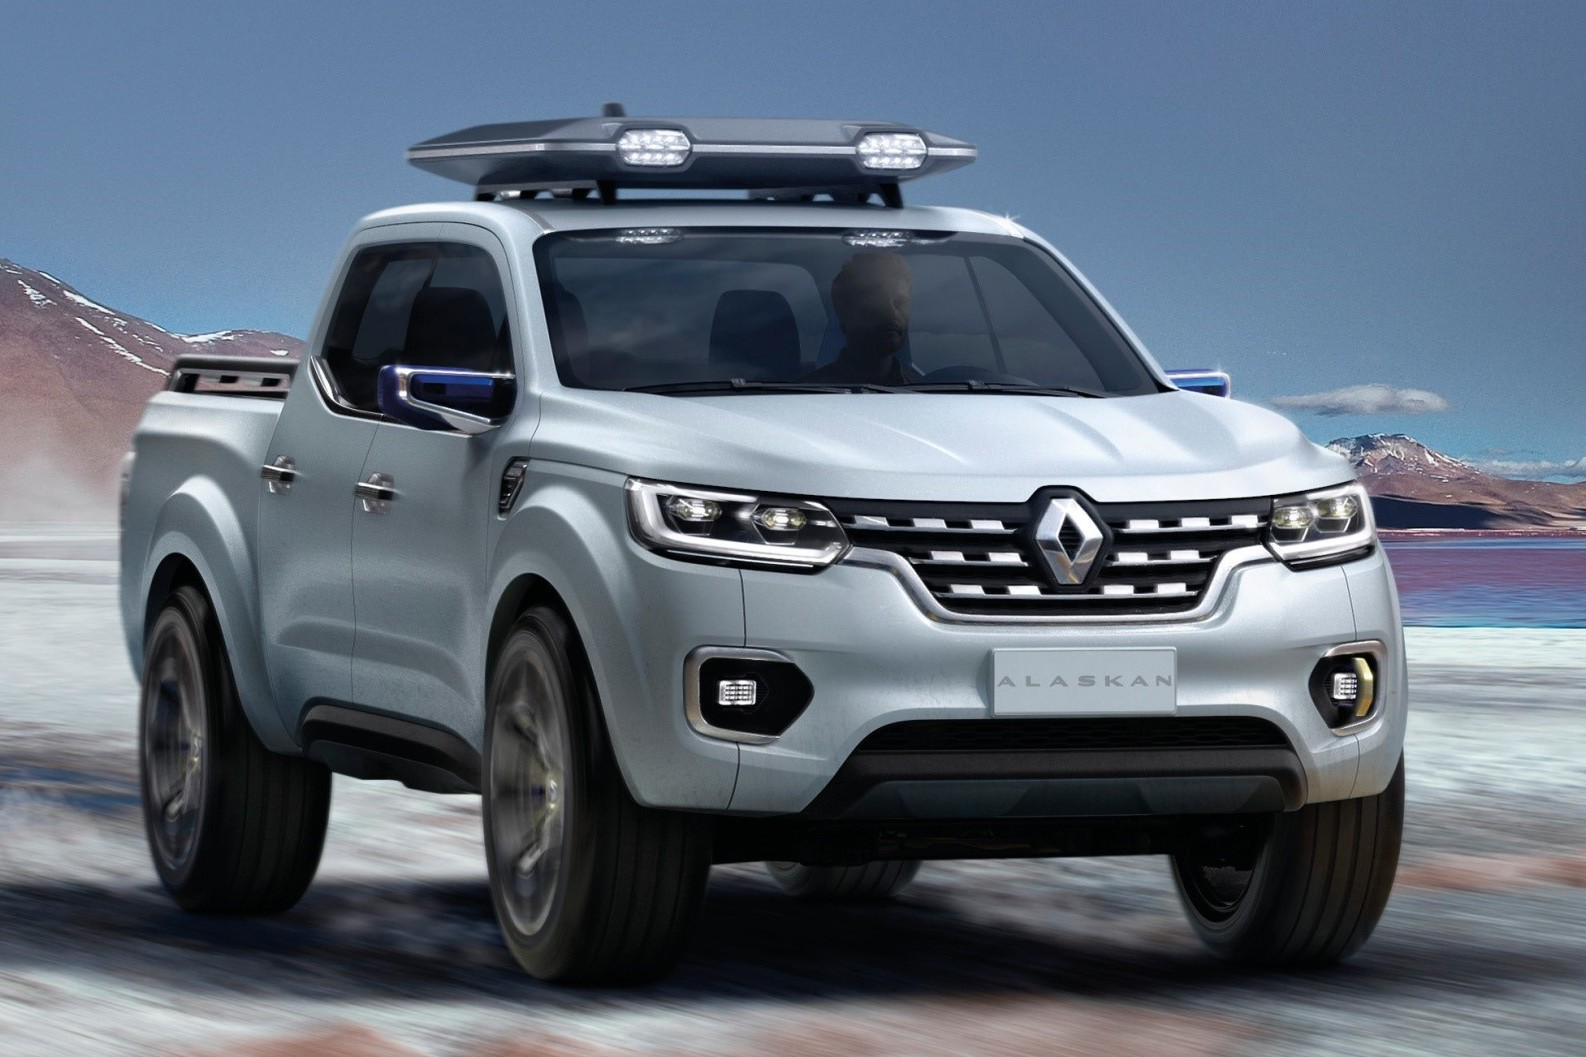 Pick Up Nissan 2018 >> Renault Alaskan pick-up truck concept unveiled; Frankfurt debut – it's a French Nissan NP300 ...